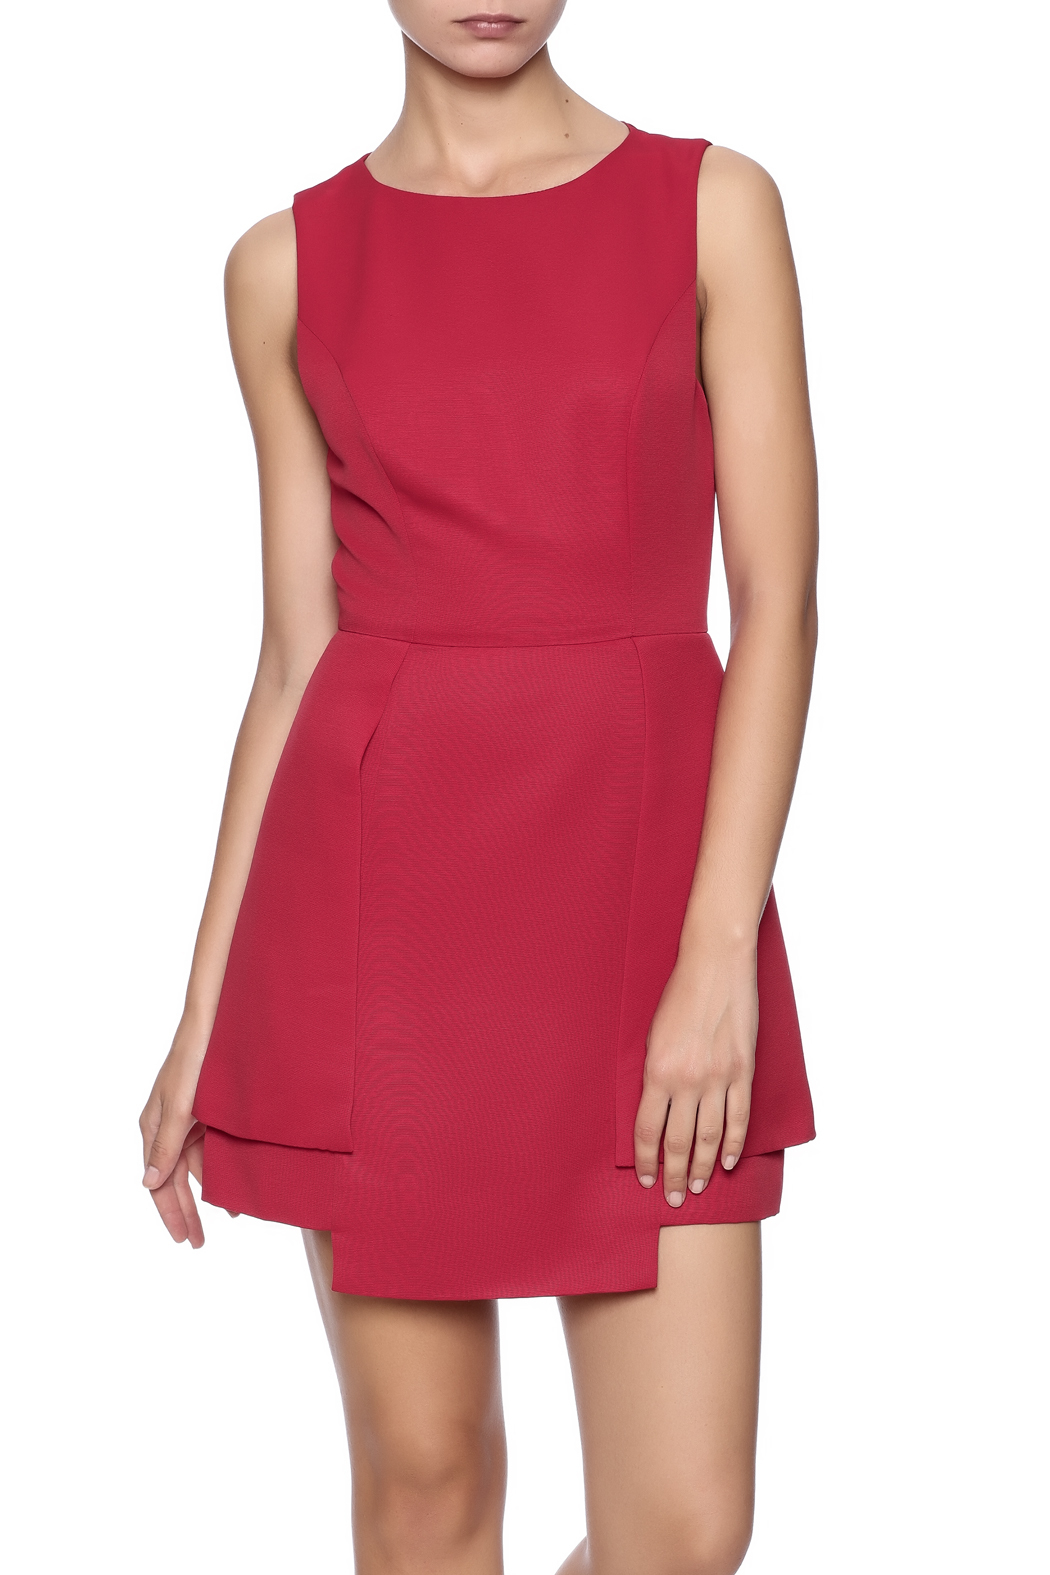 finders keepers red frame dress front cropped image